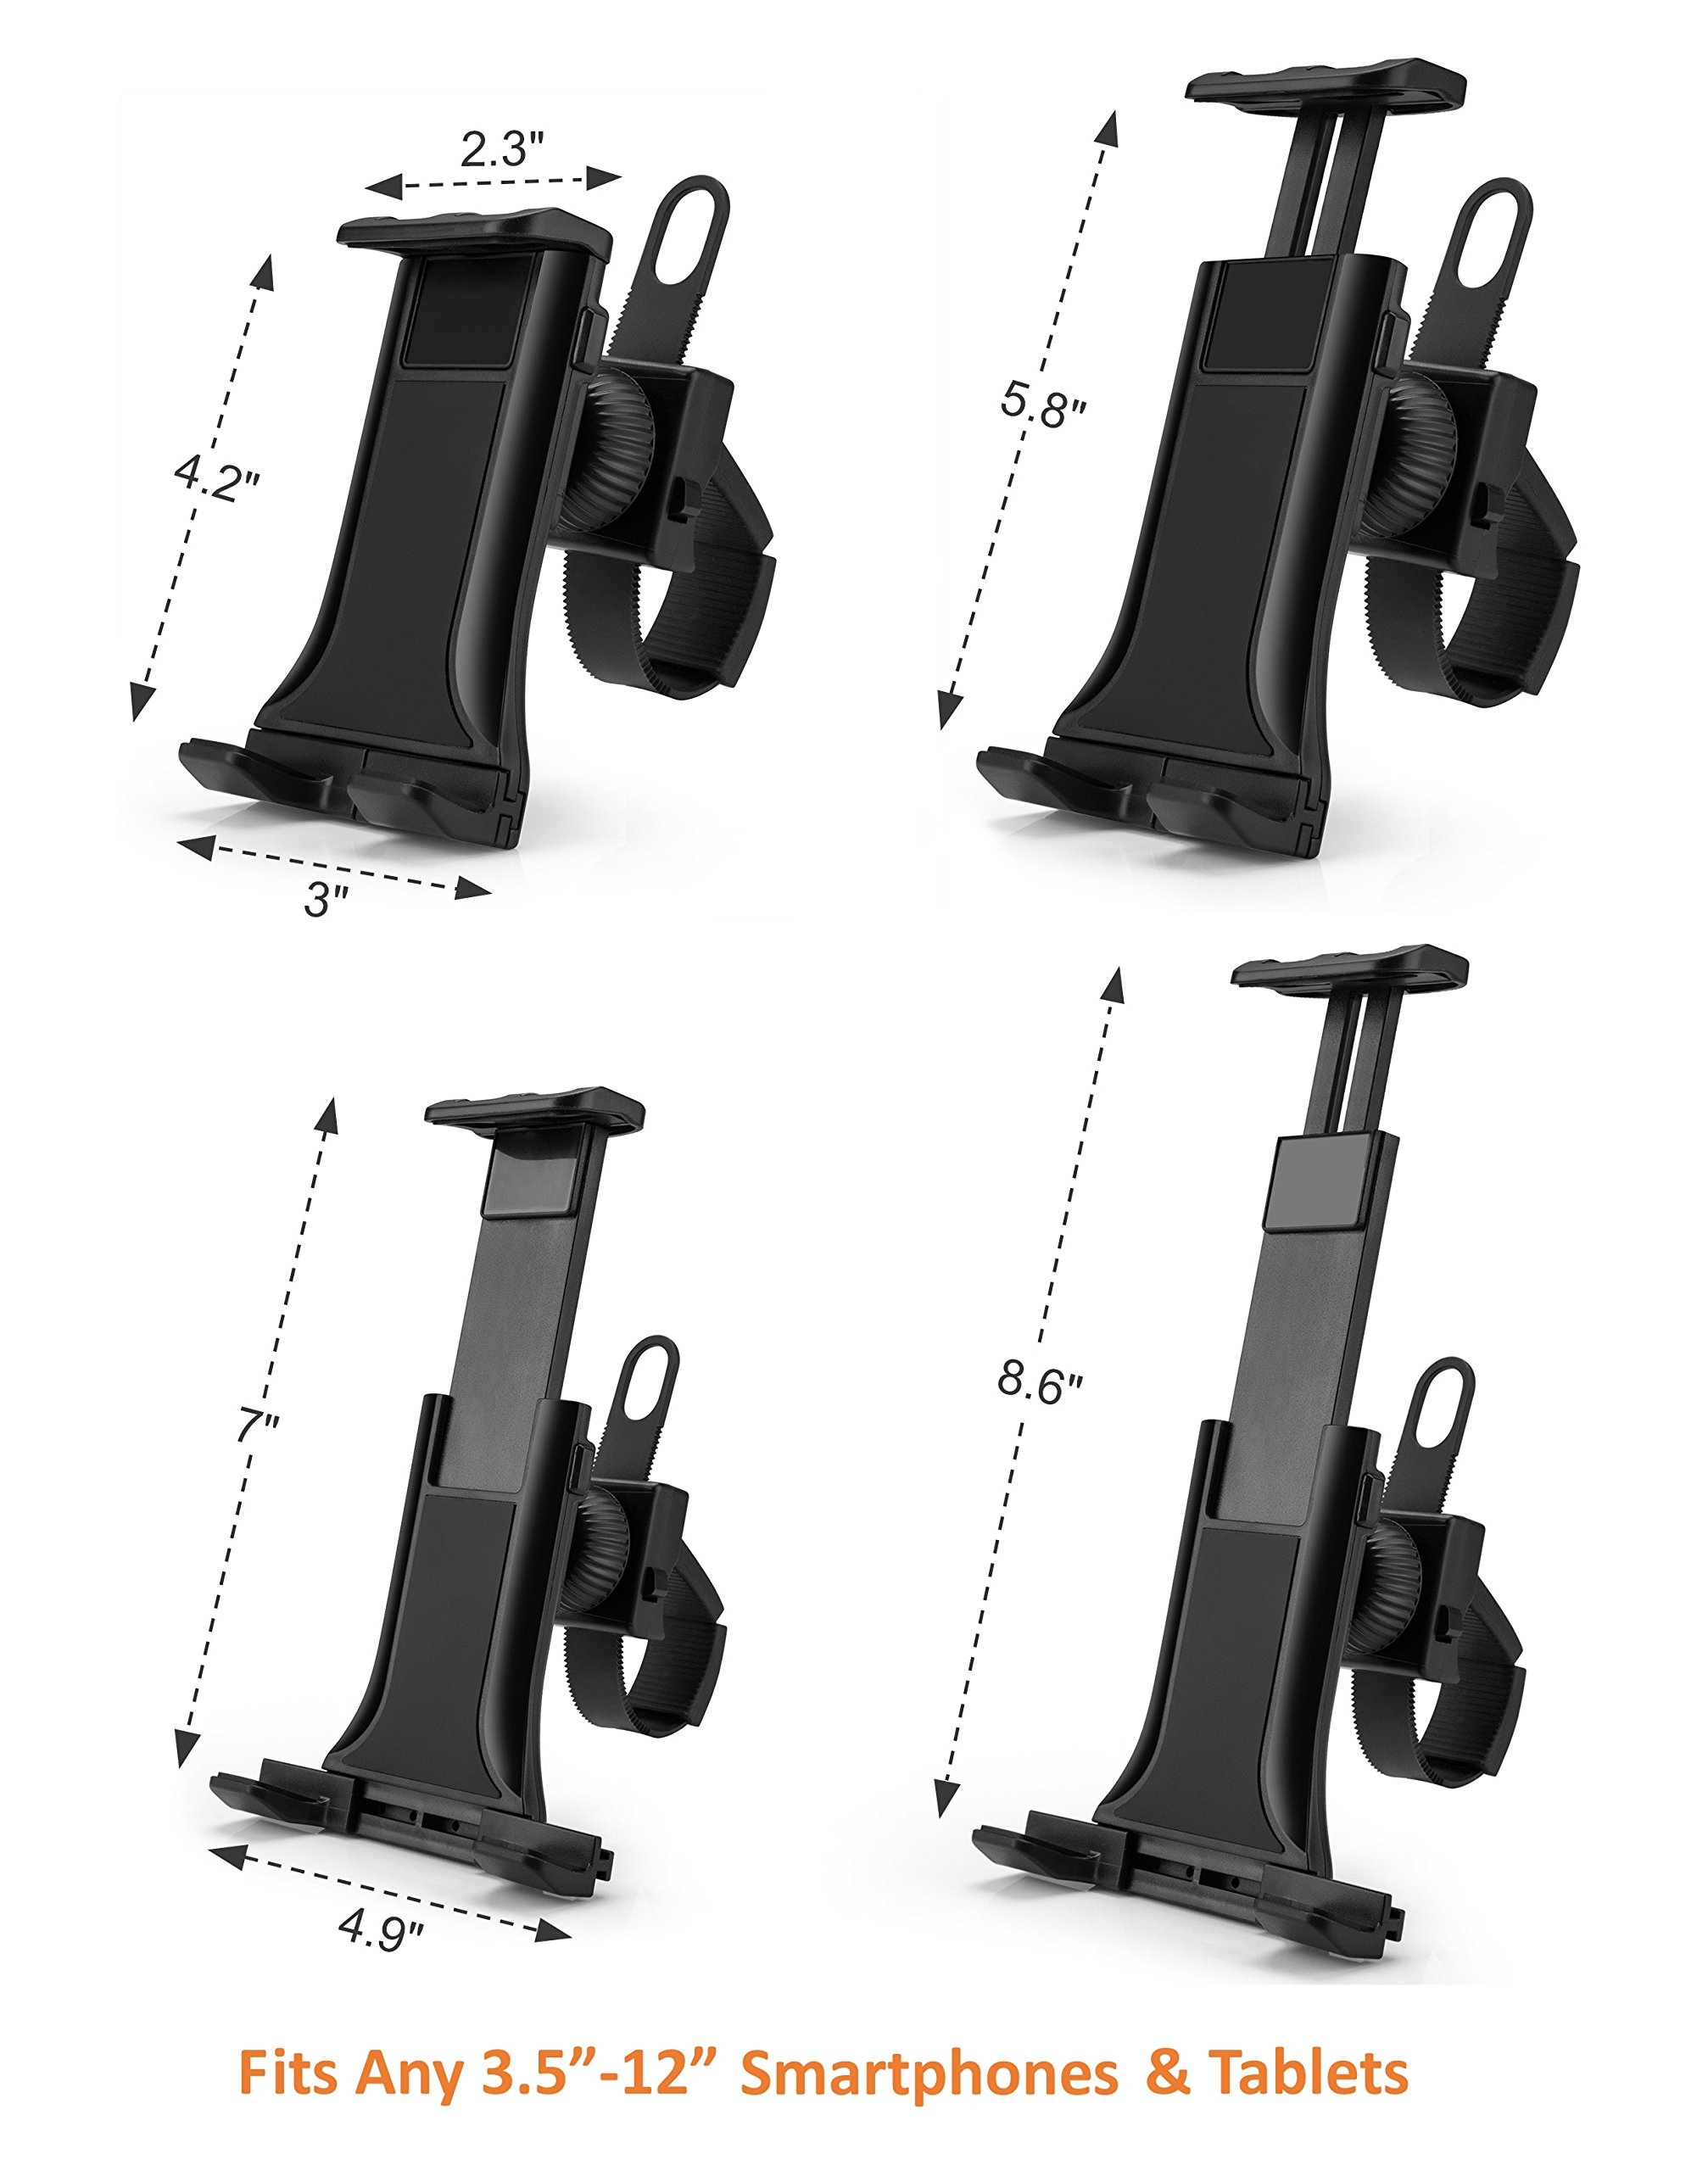 AboveTEK All-In-One Cycling Bike iPad/iPhone Mount, Portable Compact Tablet Holder for Indoor Gym Handlebar on Exercise Bikes & Treadmills, Adjustable 360° Swivel Stand For 3.5-12'' Tablets/Cell Phones by AboveTEK (Image #5)